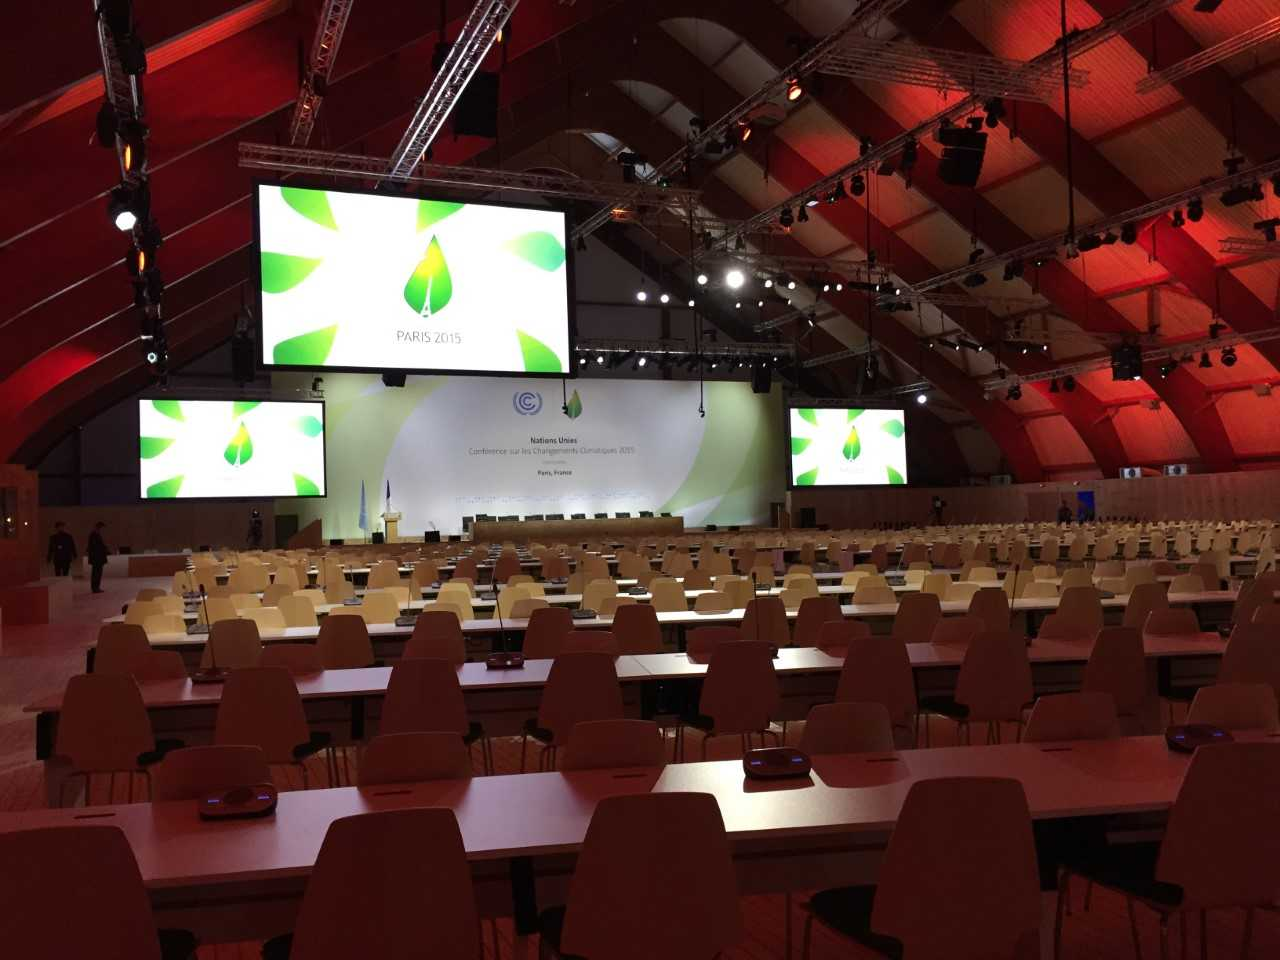 solutions-prompteur-cop21-paris